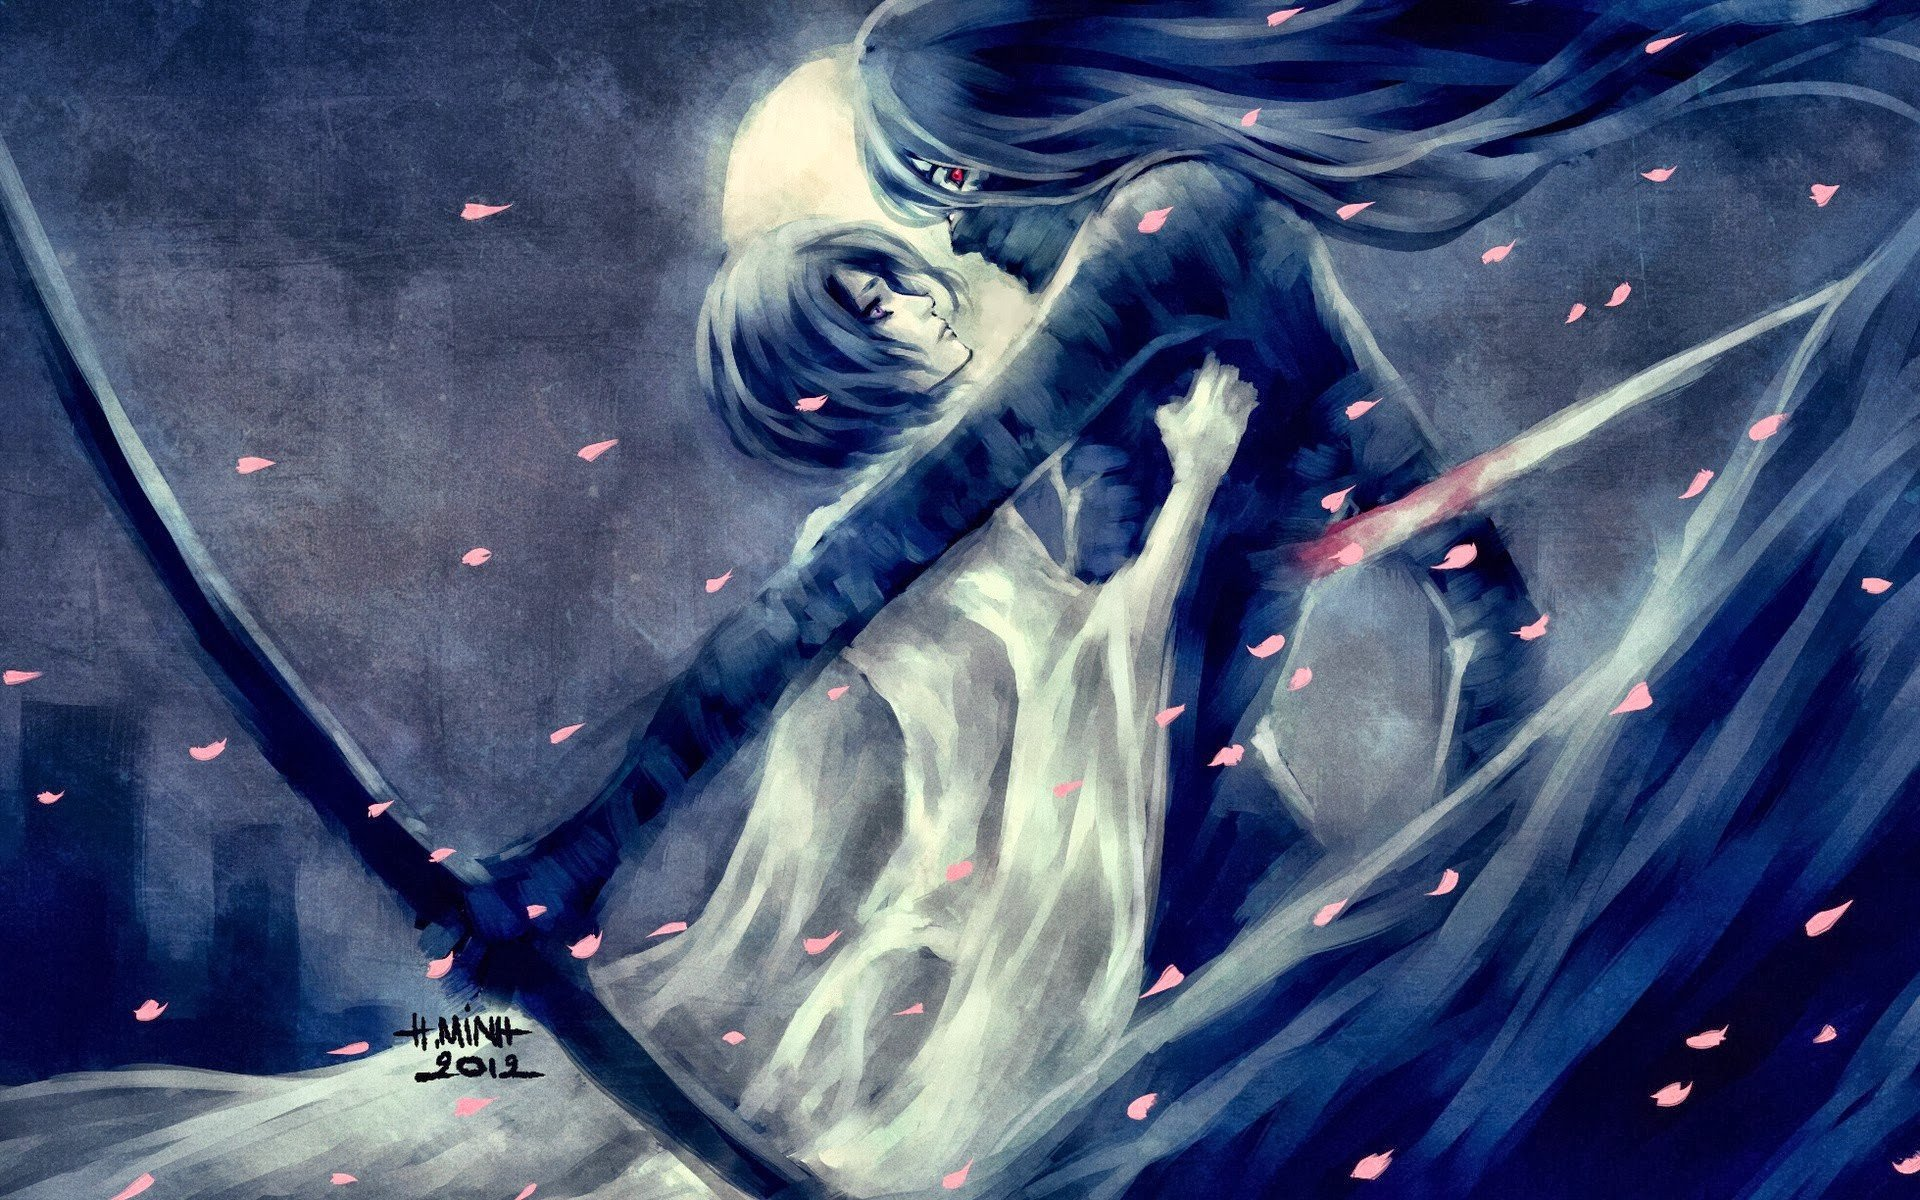 Bleach Kurosaki Ichigo Kuchiki Rukia NanFe Mugetsu Petals Sword Fan Art HD Wallpapers Desktop And Mobile Images Photos